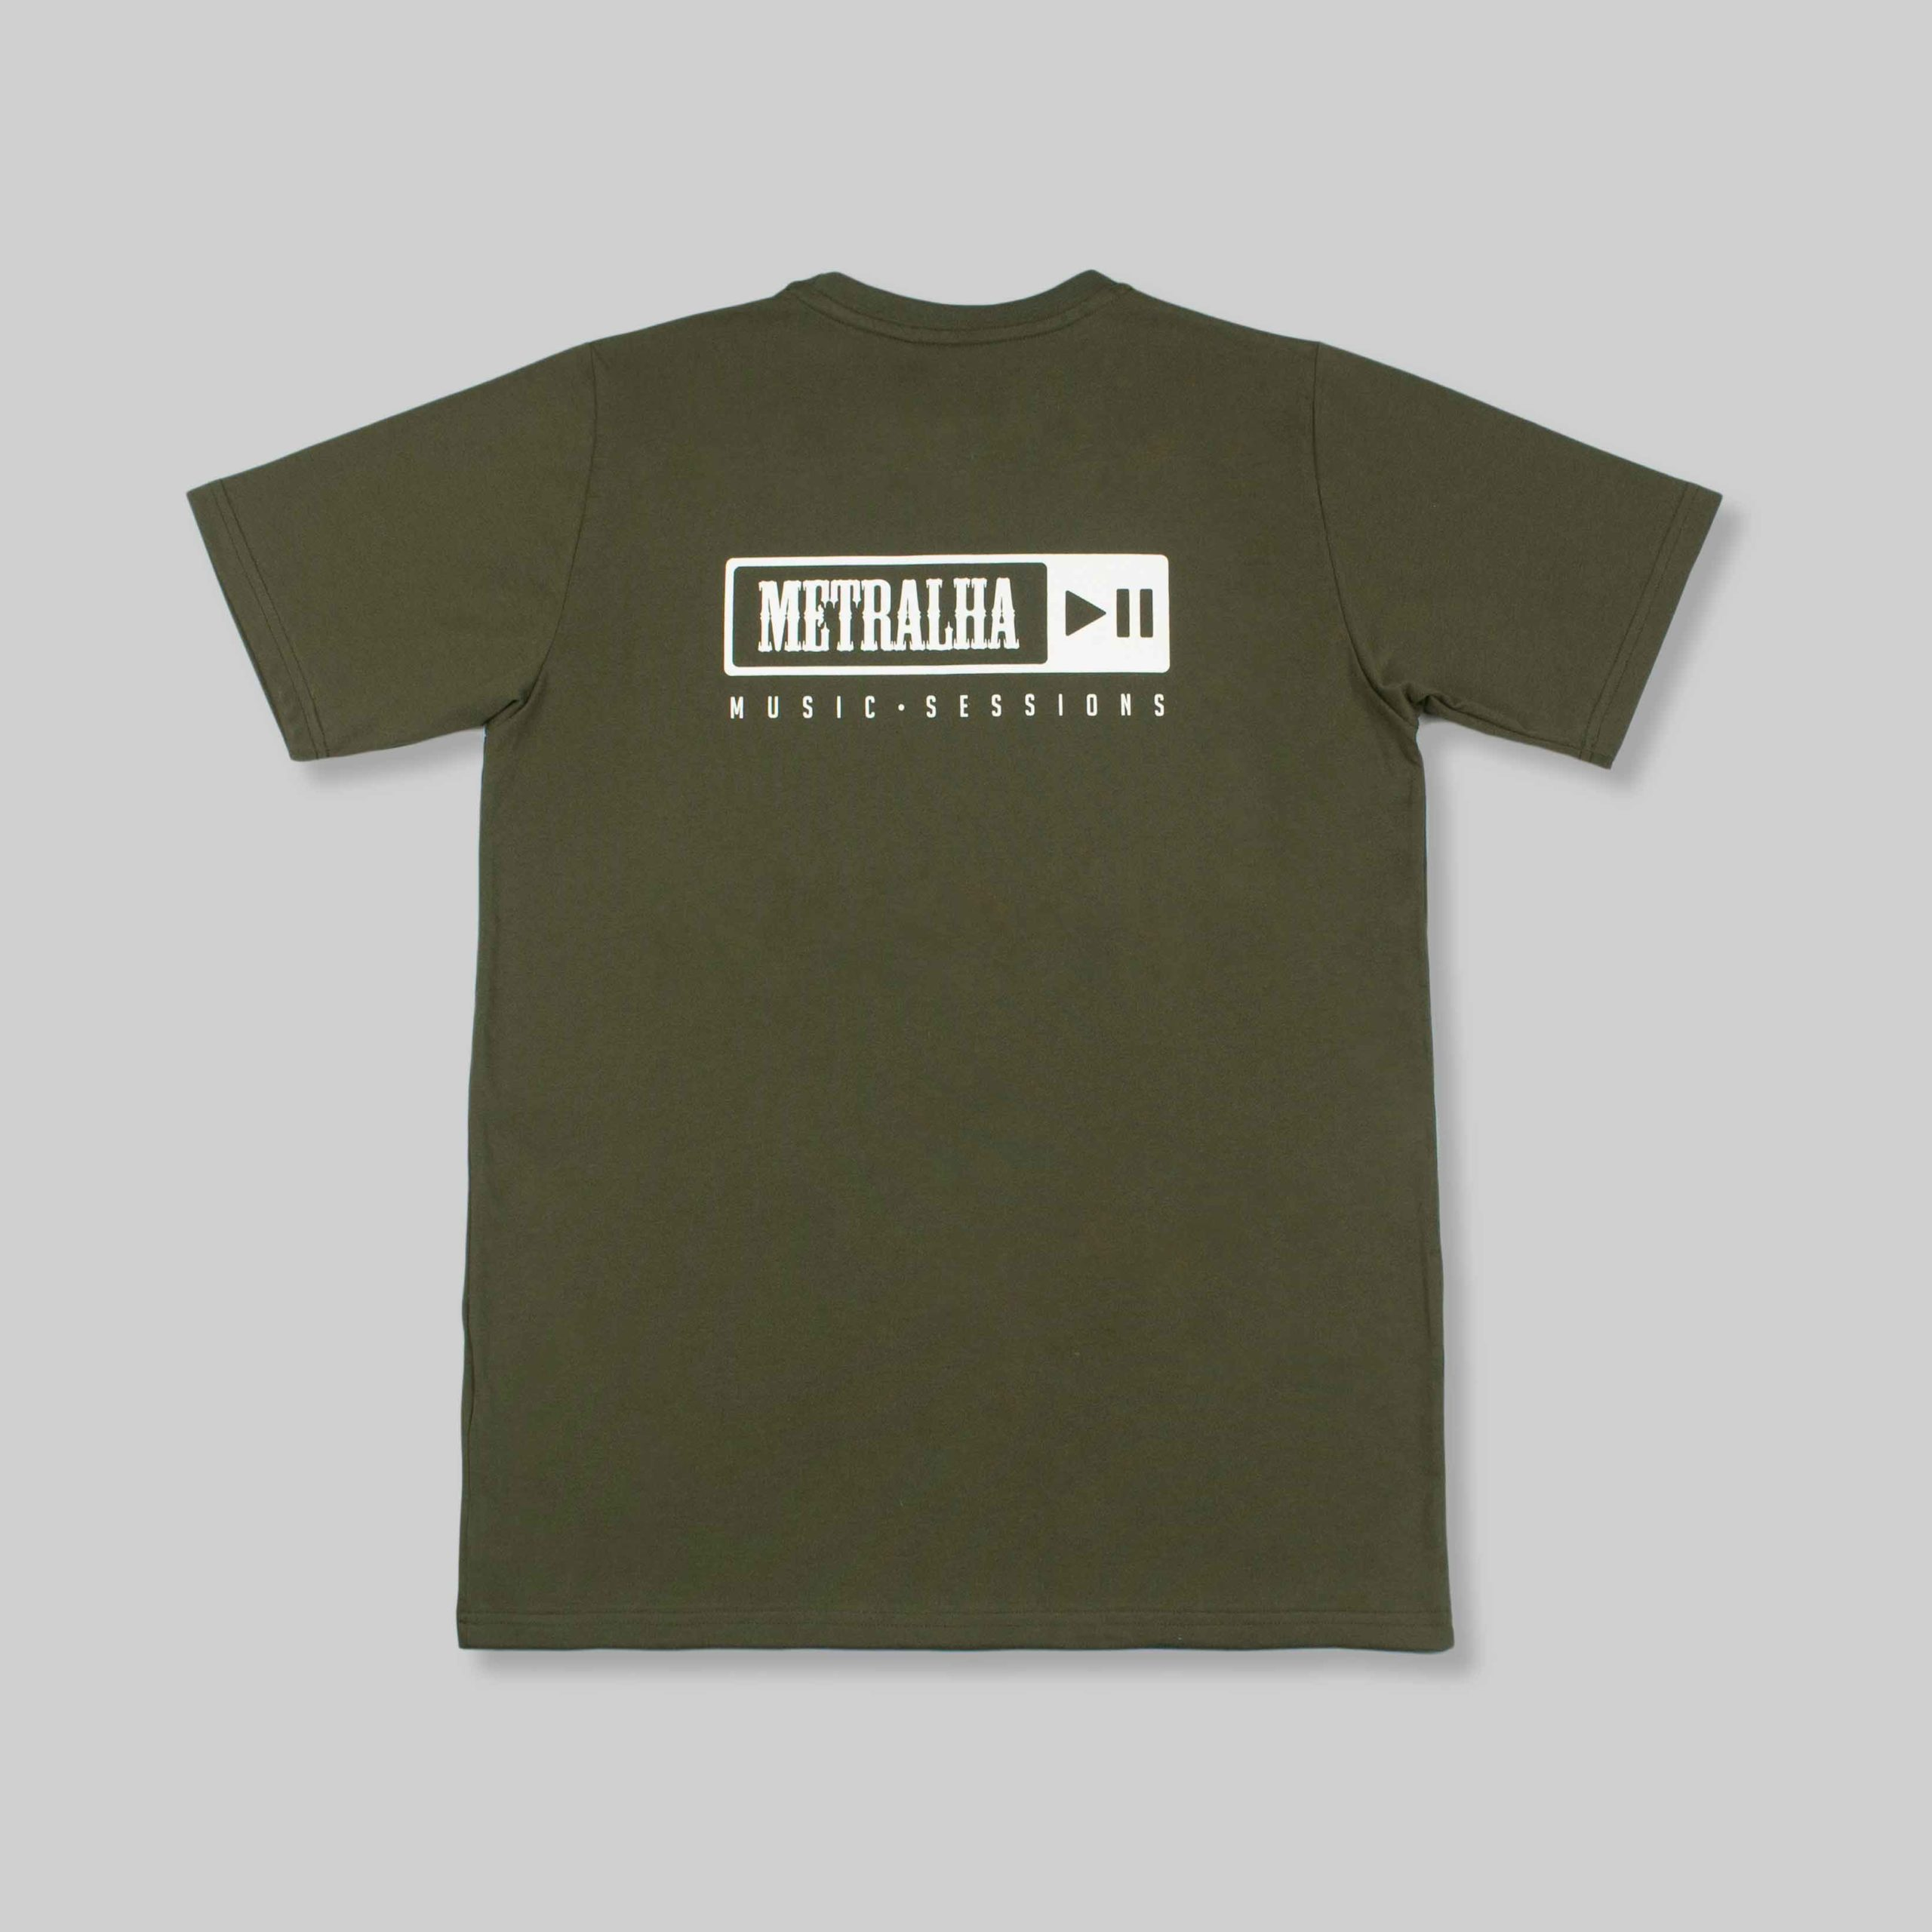 metralha-music-sessions-t-shirt-back-print-online-store-exclusive-green-moss